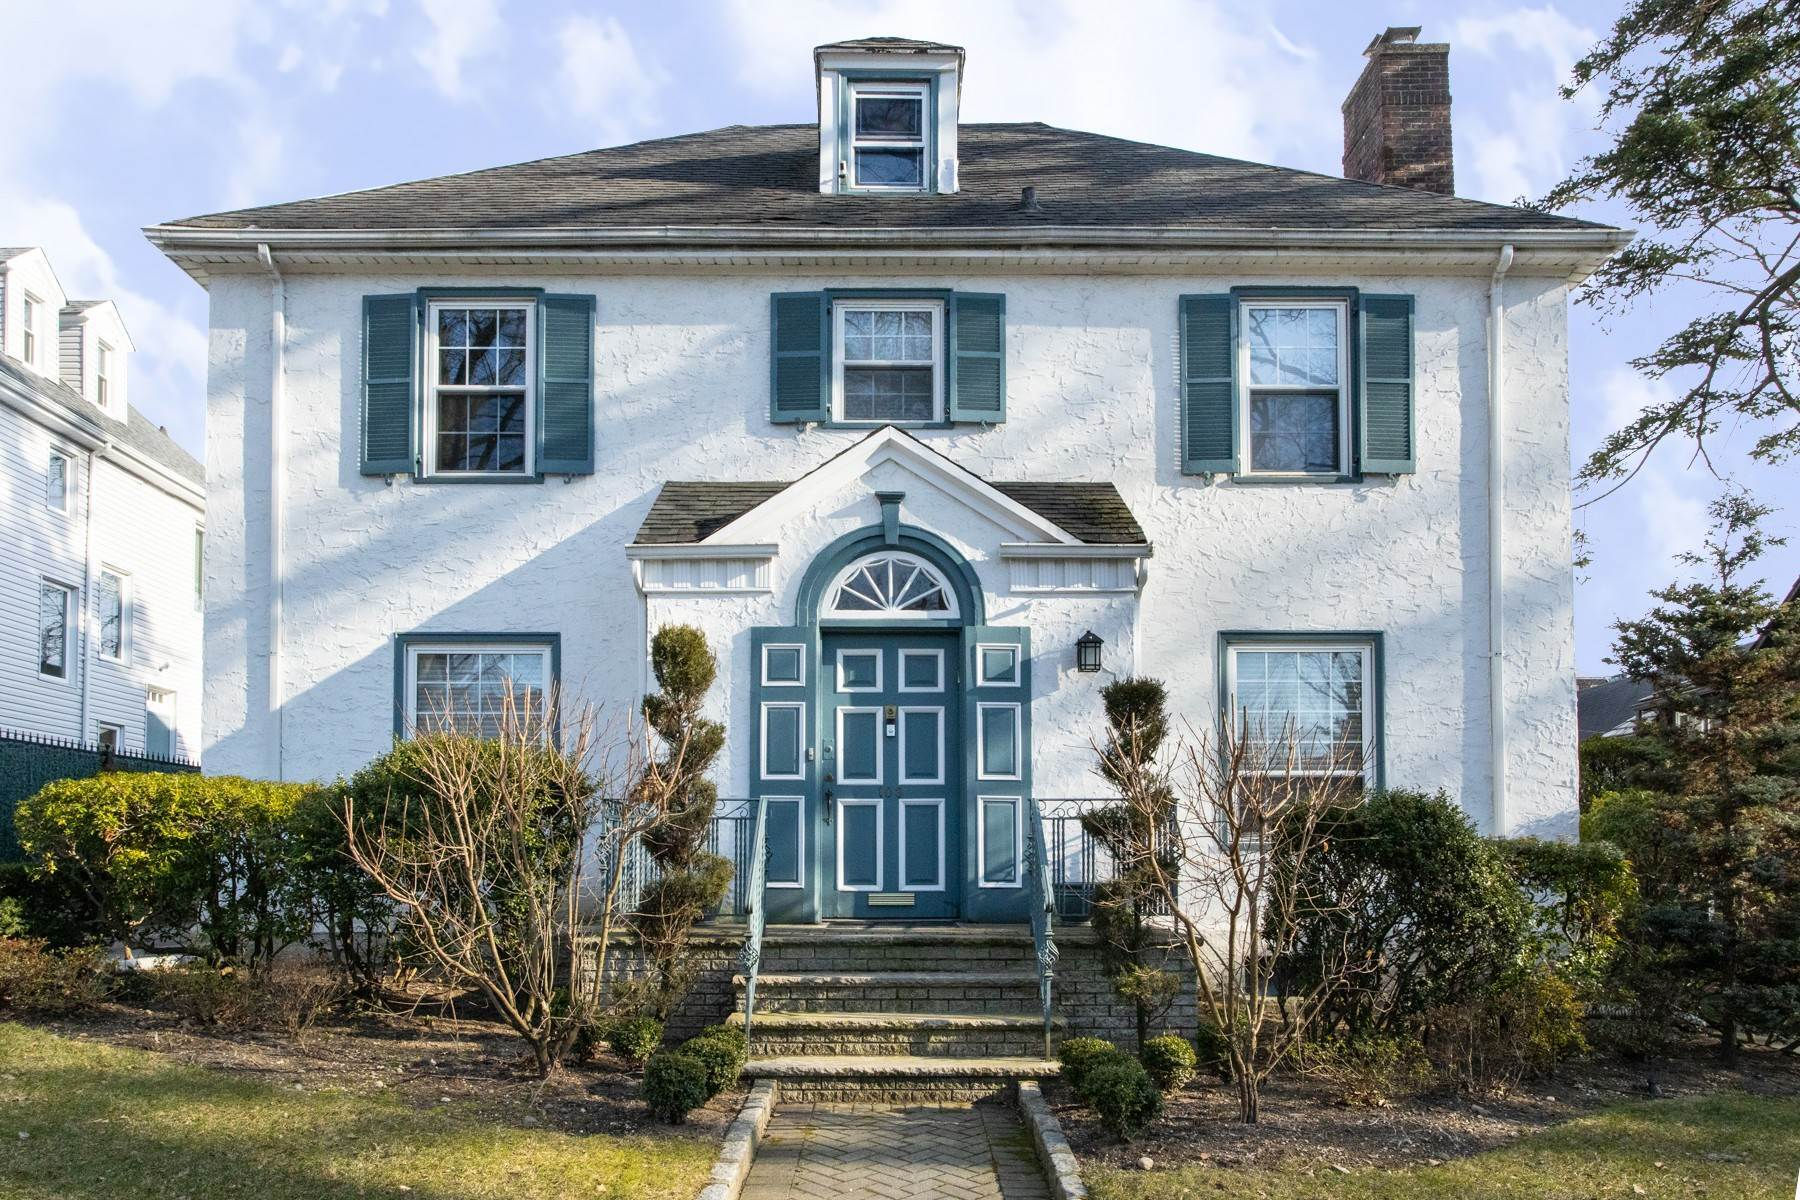 Single Family Homes for Sale at 'GRACIOUS LIVING IN KEW GARDENS' 103 Mowbray Drive, Kew Gardens, New York 11415 United States